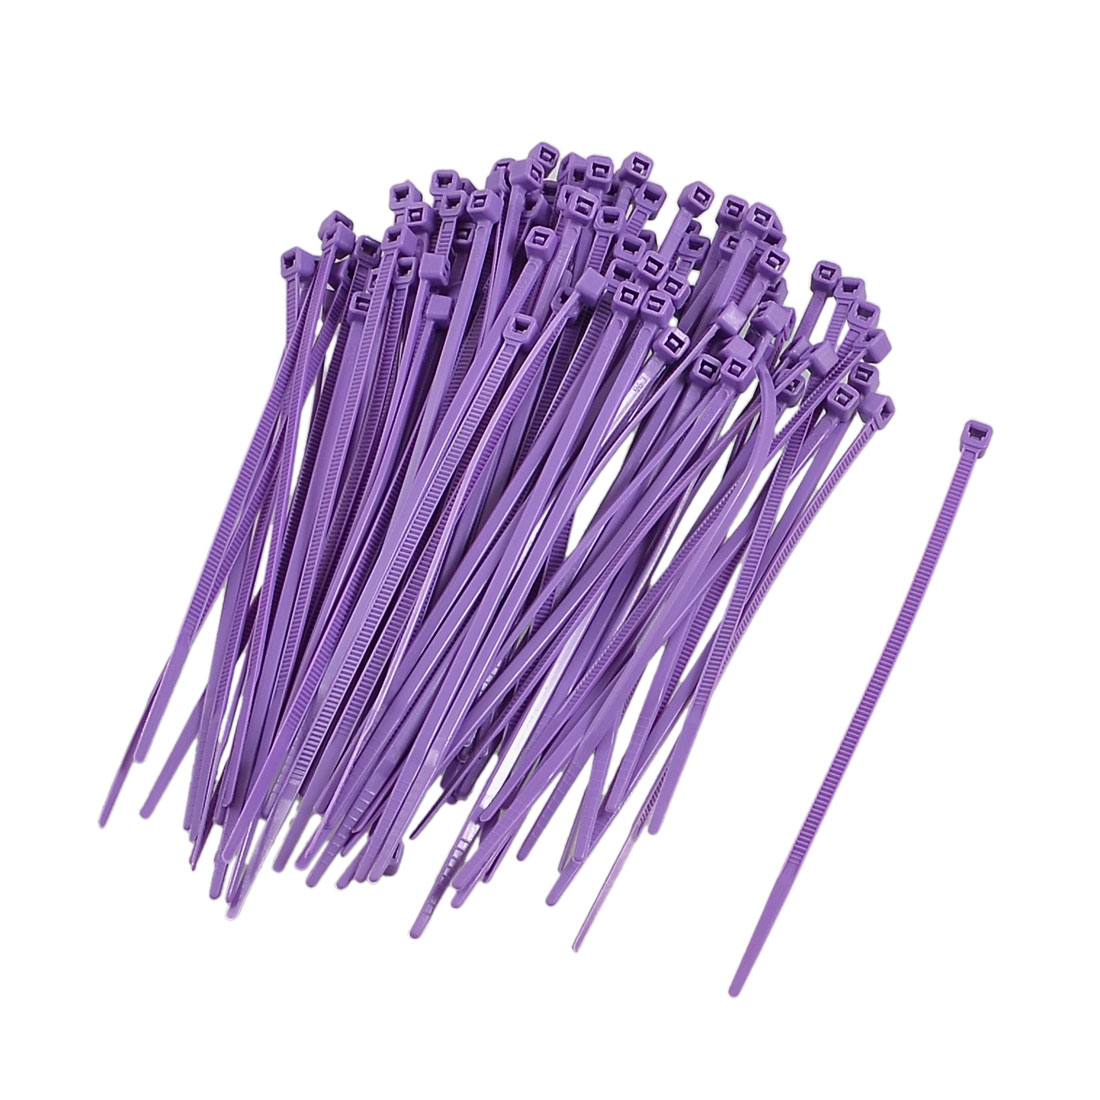 100 Pcs Self-locking Flexible Marker Label Cable Zip Ties Straps Purple